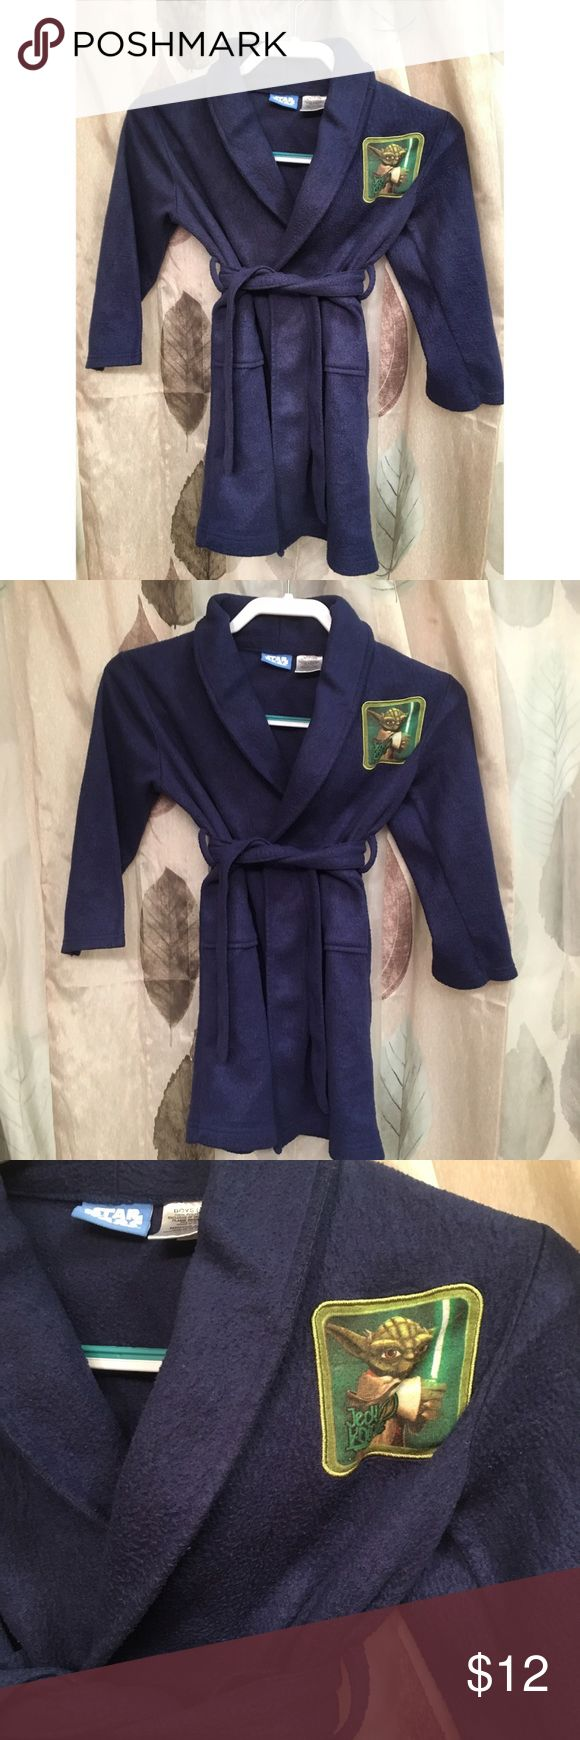 🆕List! Jedi Knight Bathrobe! VGUC! A little nubby but no stains, rips or tears. Brit is attached. Yoda patch. Square open pockets. Size 4/5. Star Wars Pajamas Robes